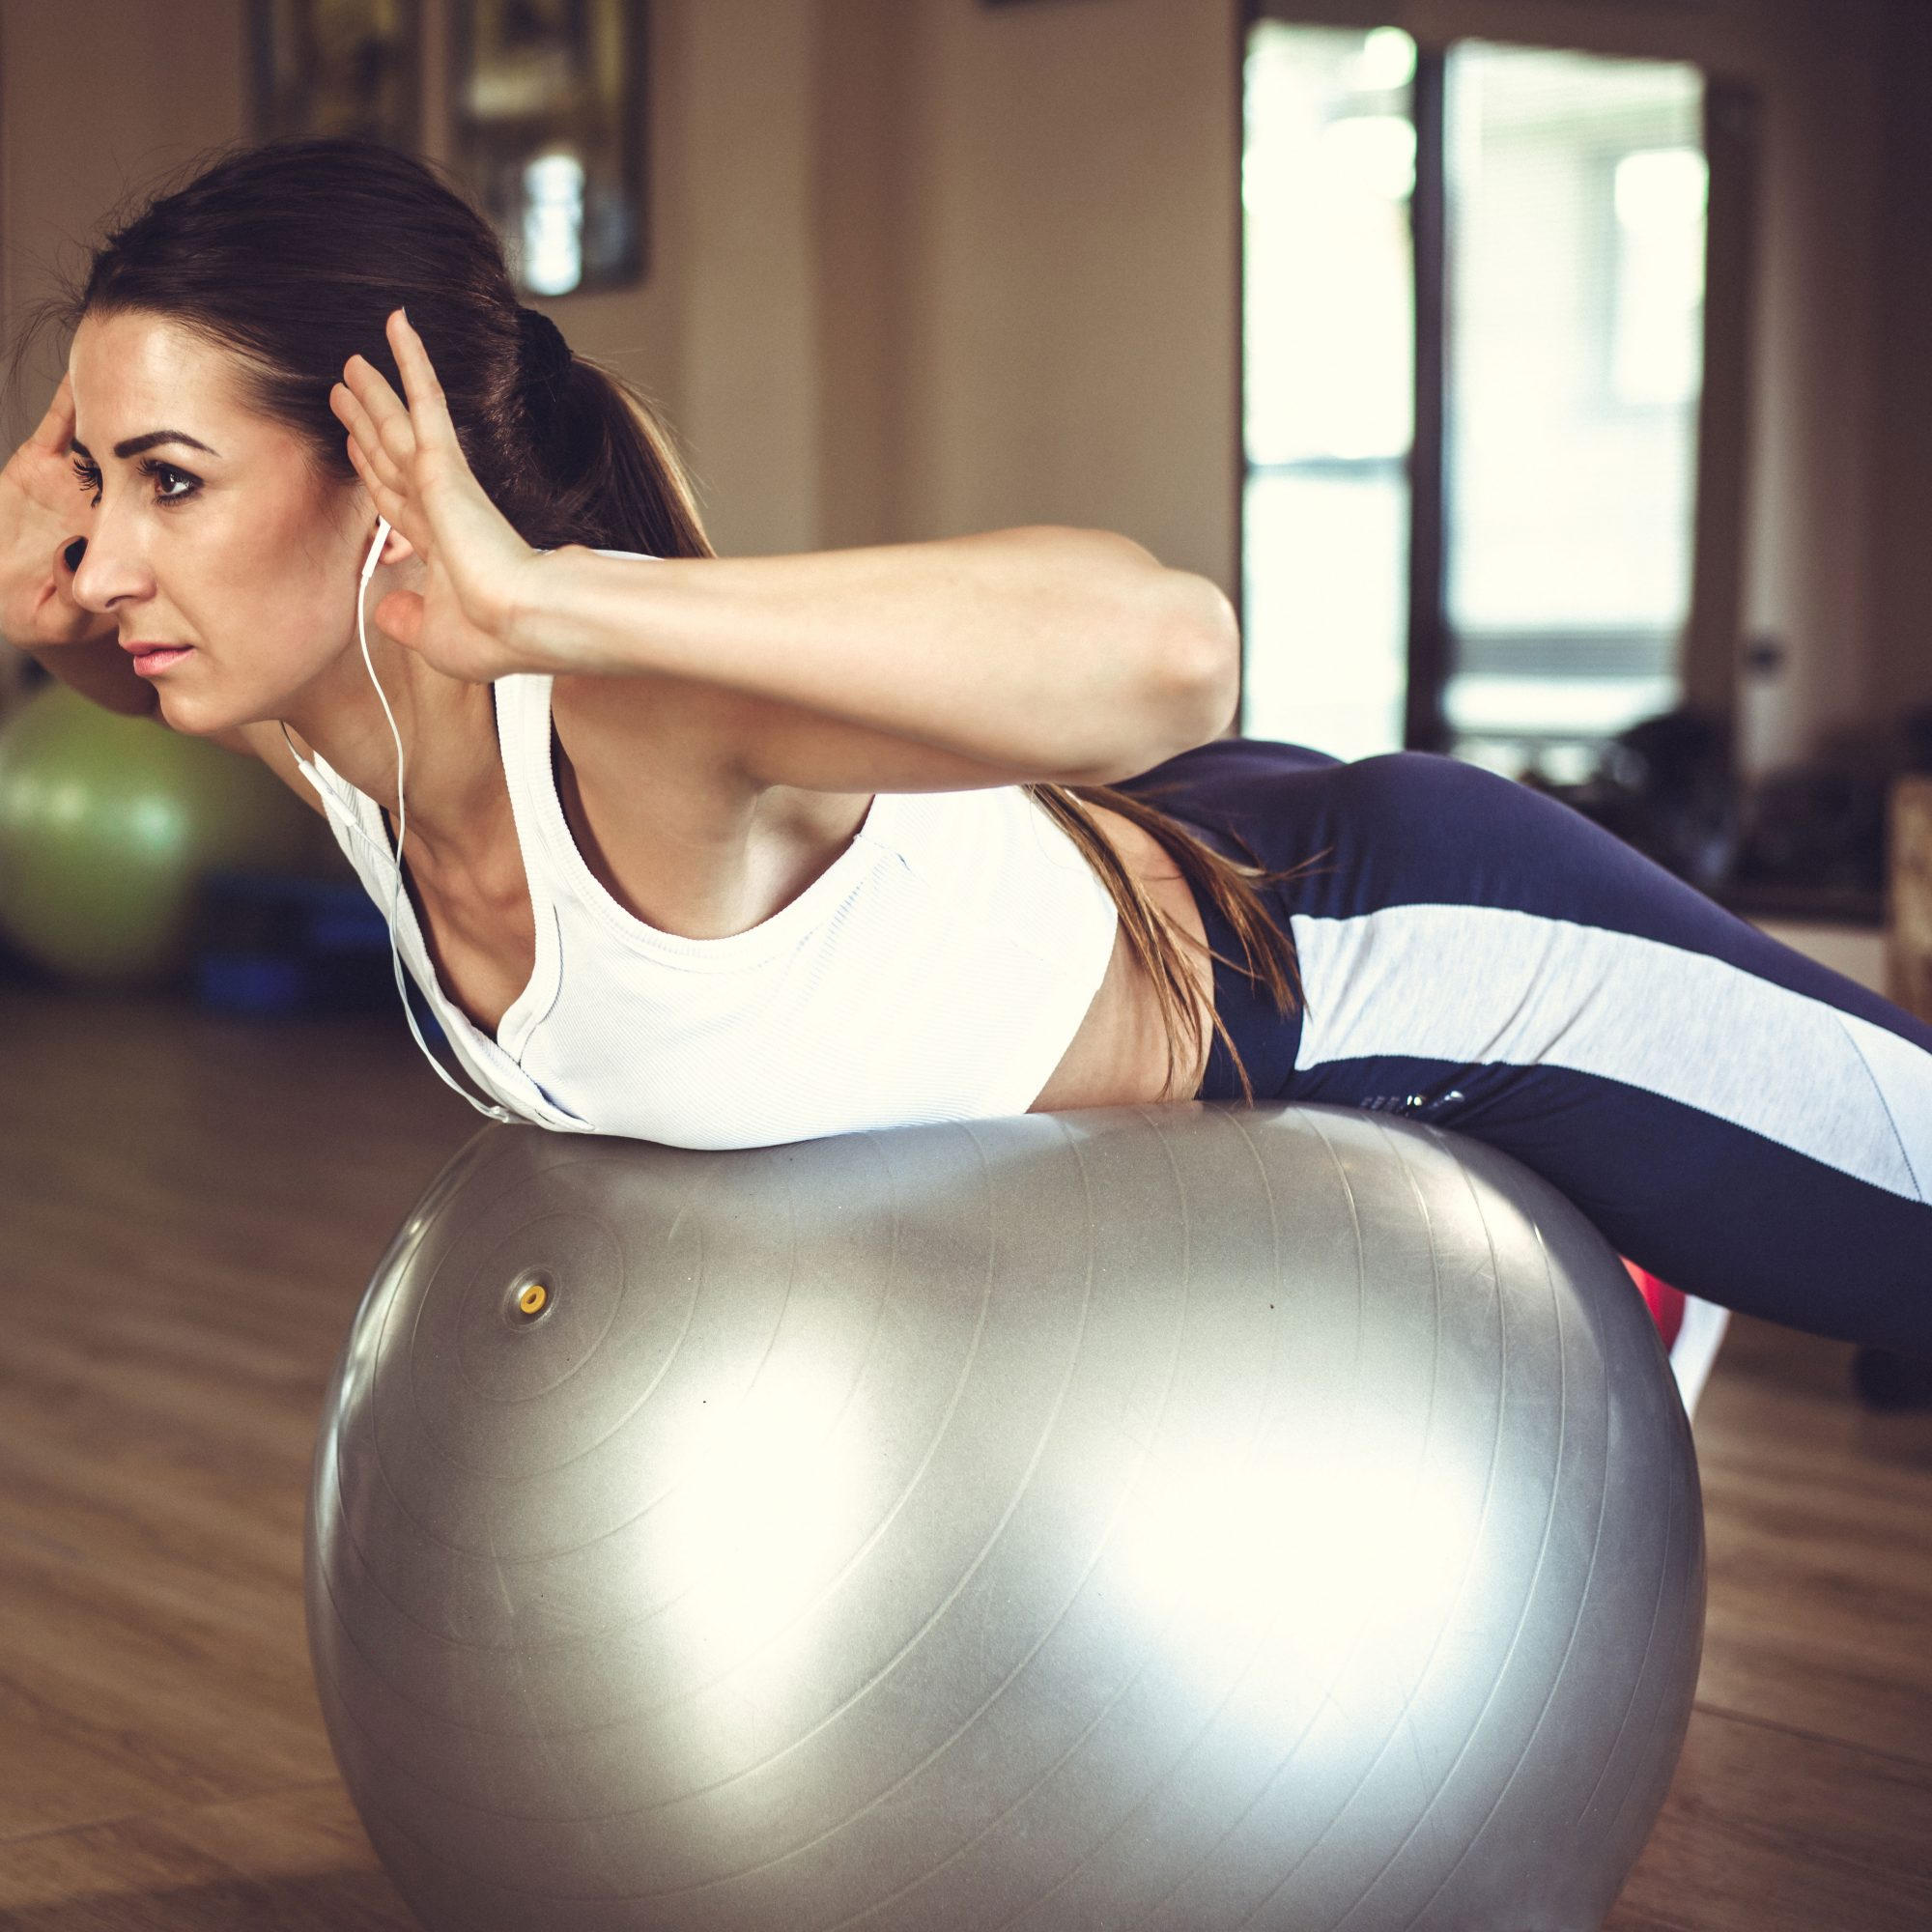 Woman_Doing_Stability_Ball_Shoulder_Stabilization